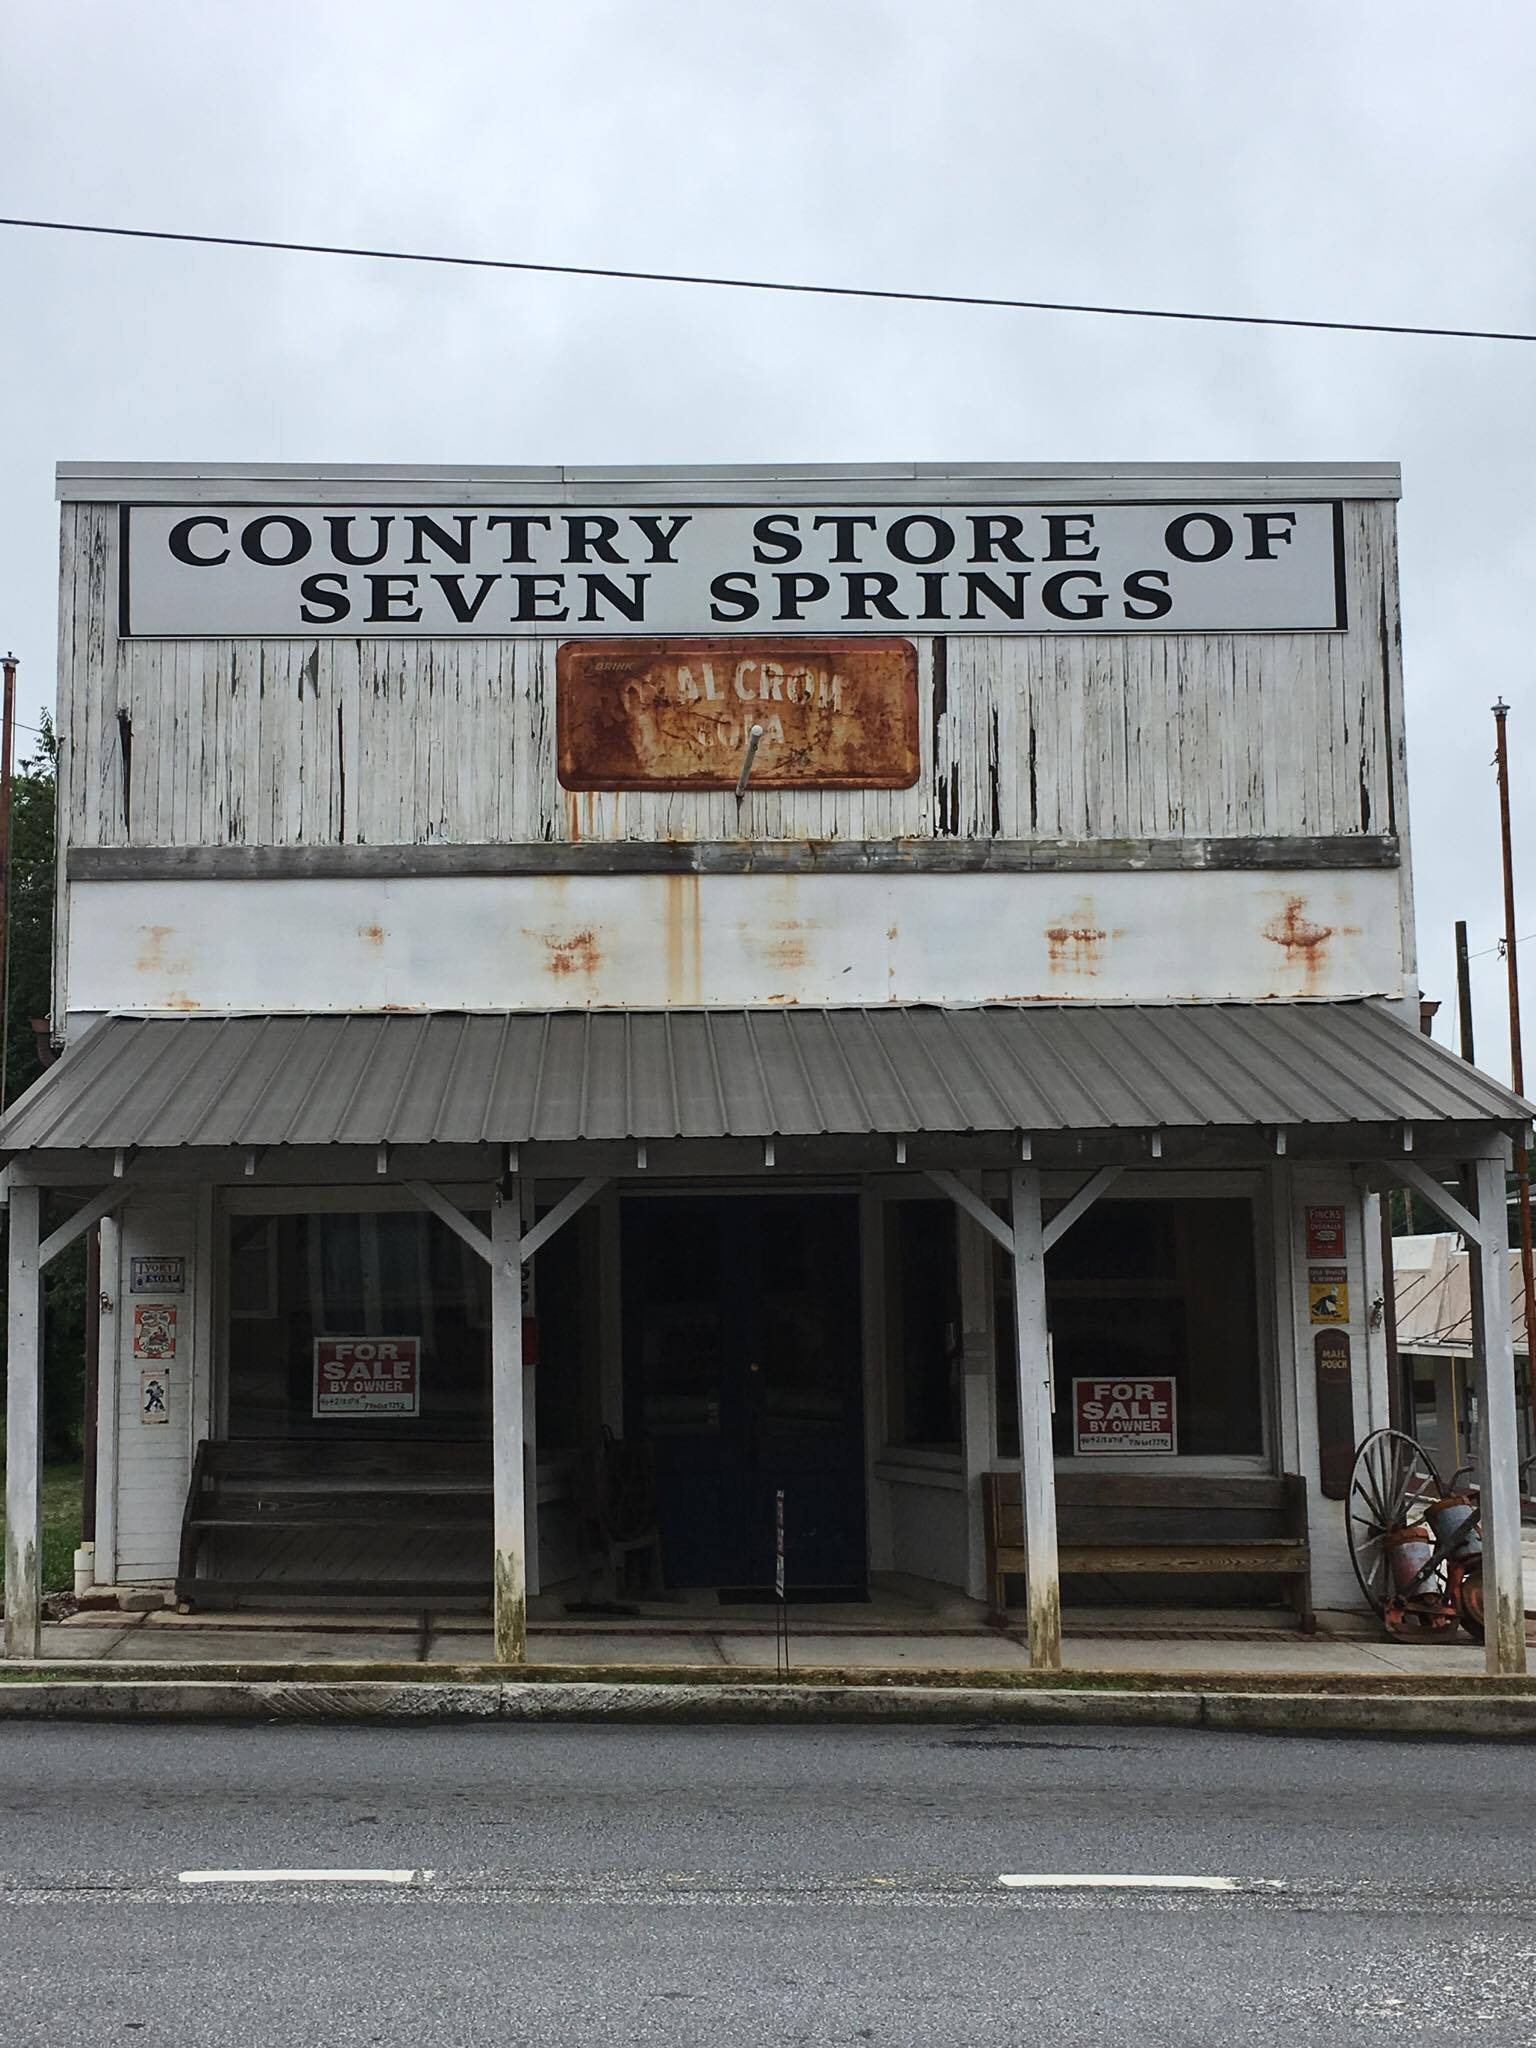 The store was built c.1879 and has been an important landmark in Power Springs ever since.